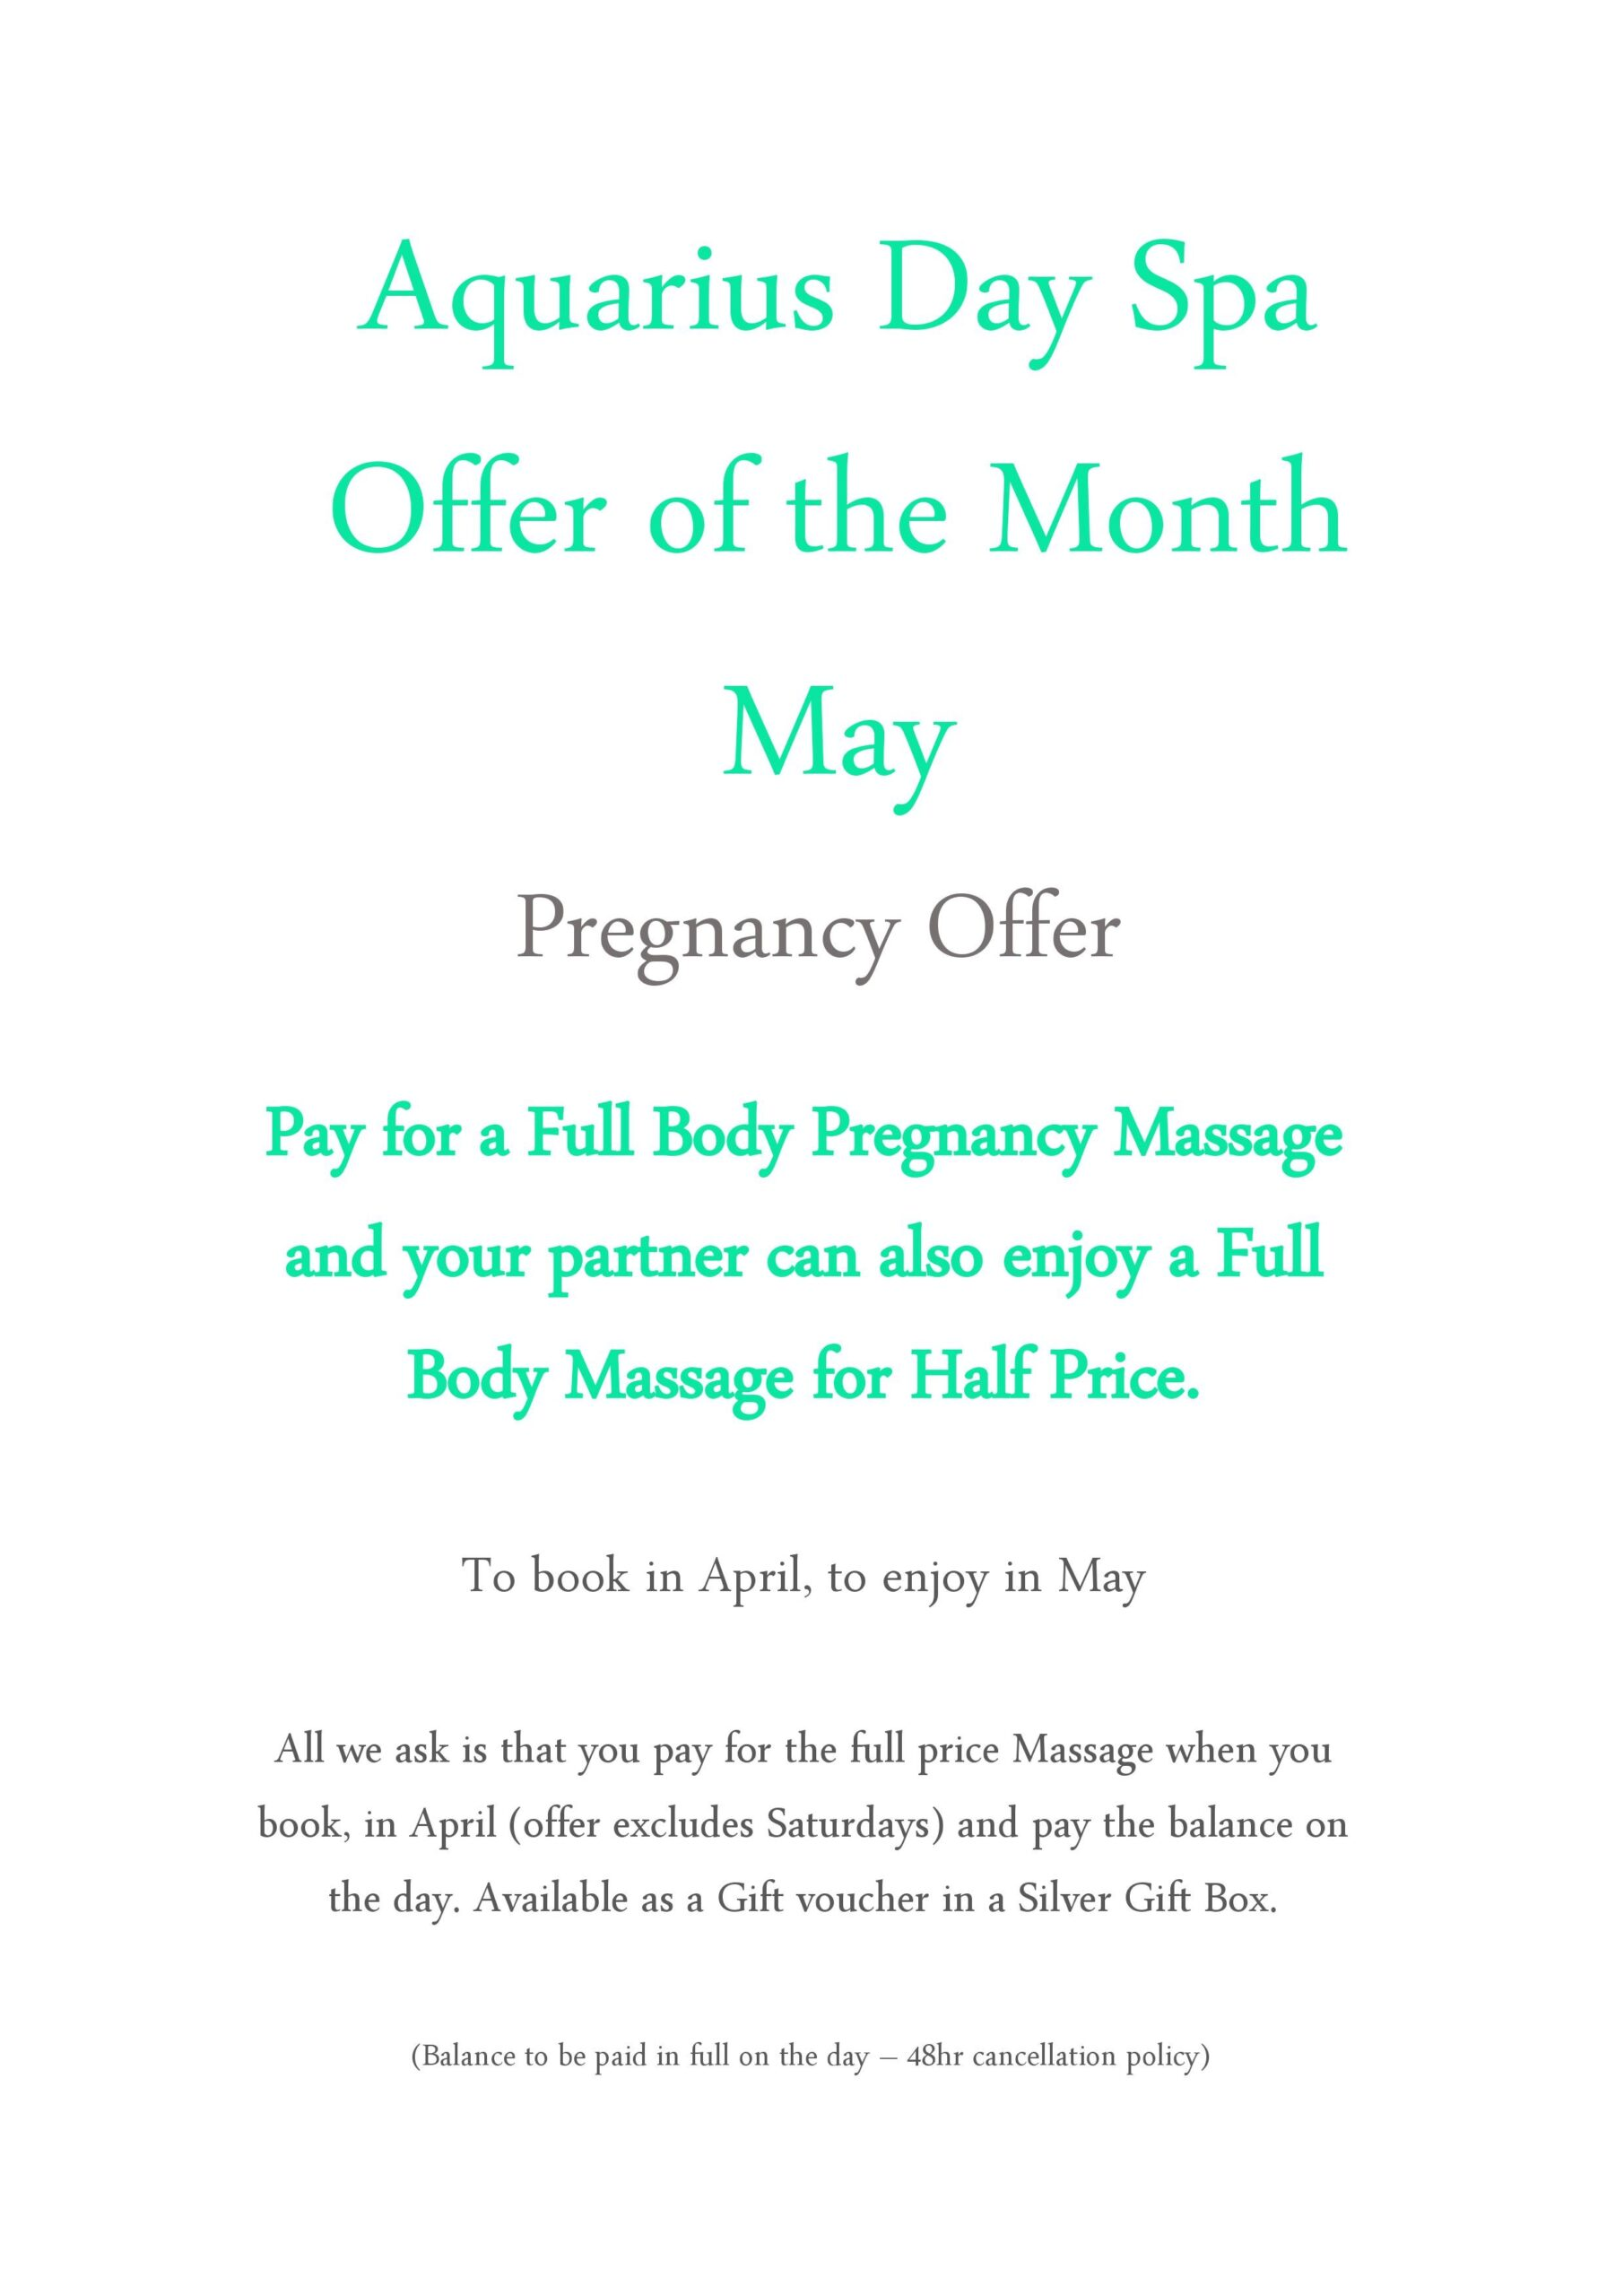 Aquarius Day Spa beauty Offer May 2019